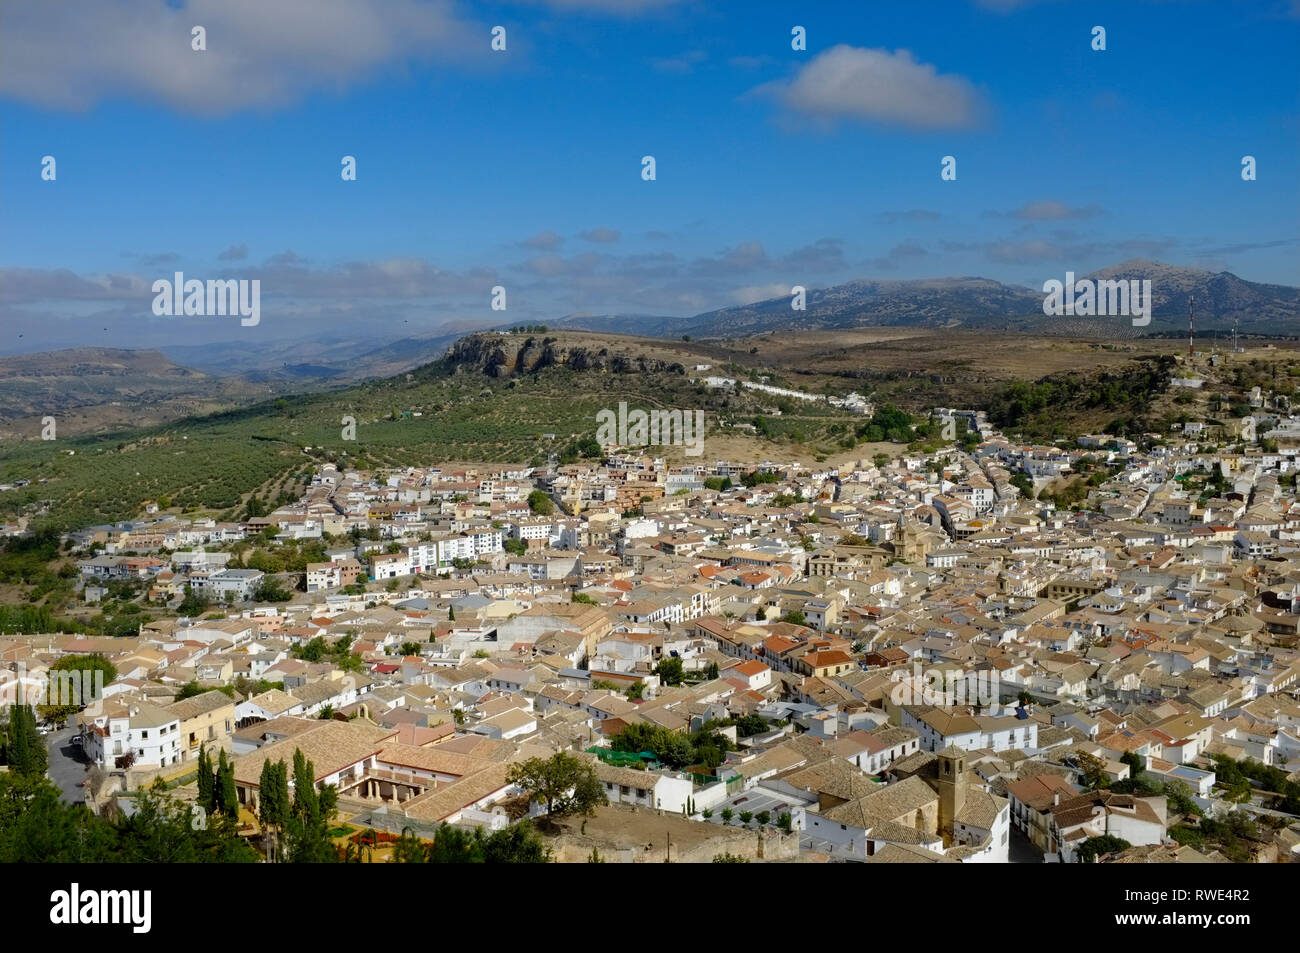 View of Alcala la Real, Jaen Province, Andalusia, Spain, taken from the Castle. - Stock Image